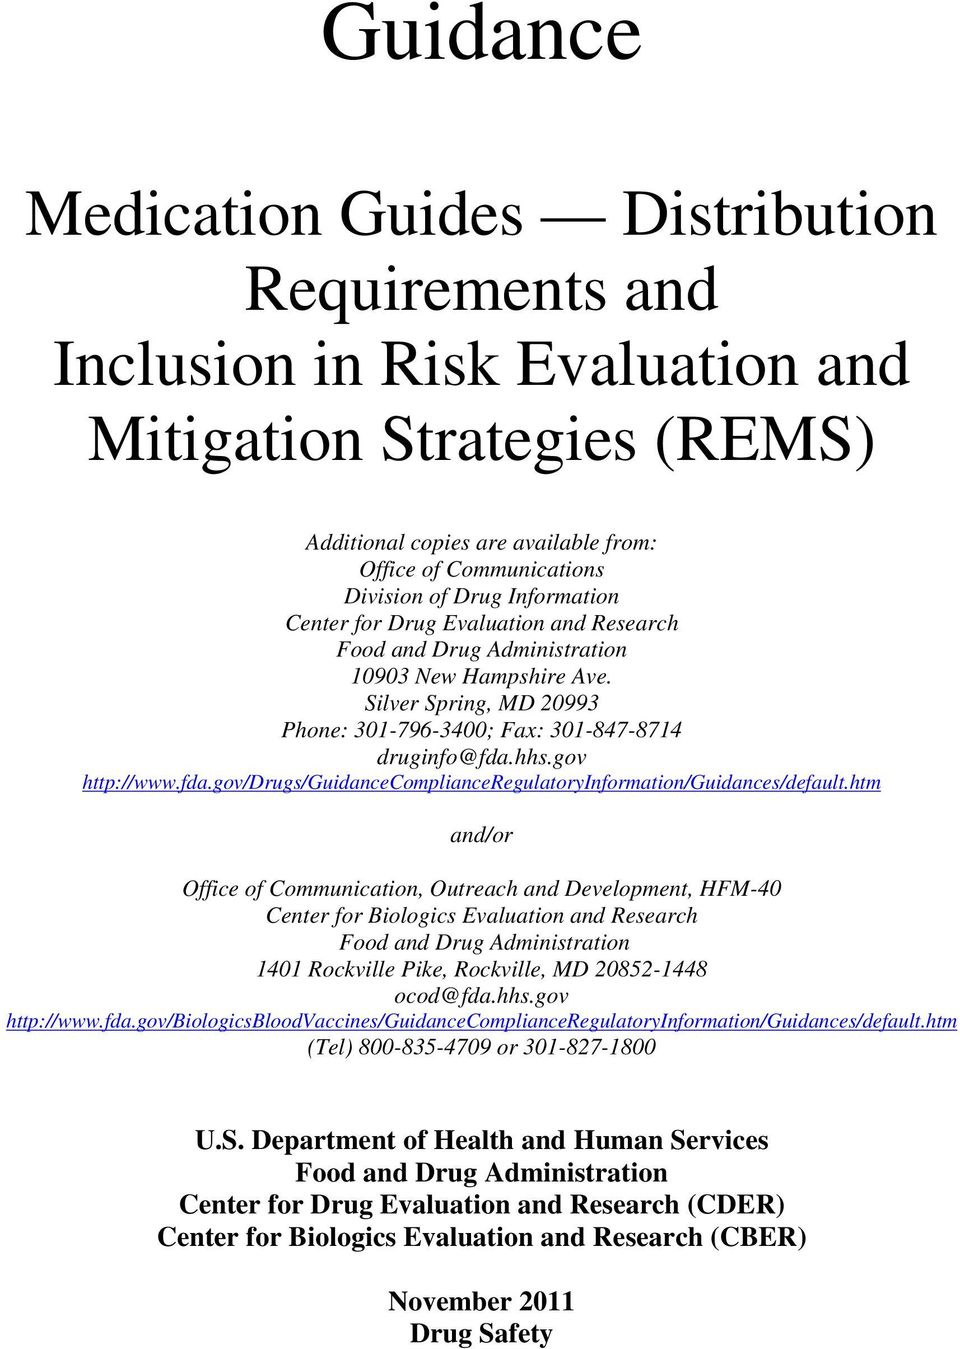 hhs.gov http://www.fda.gov/drugs/guidancecomplianceregulatoryinformation/guidances/default.